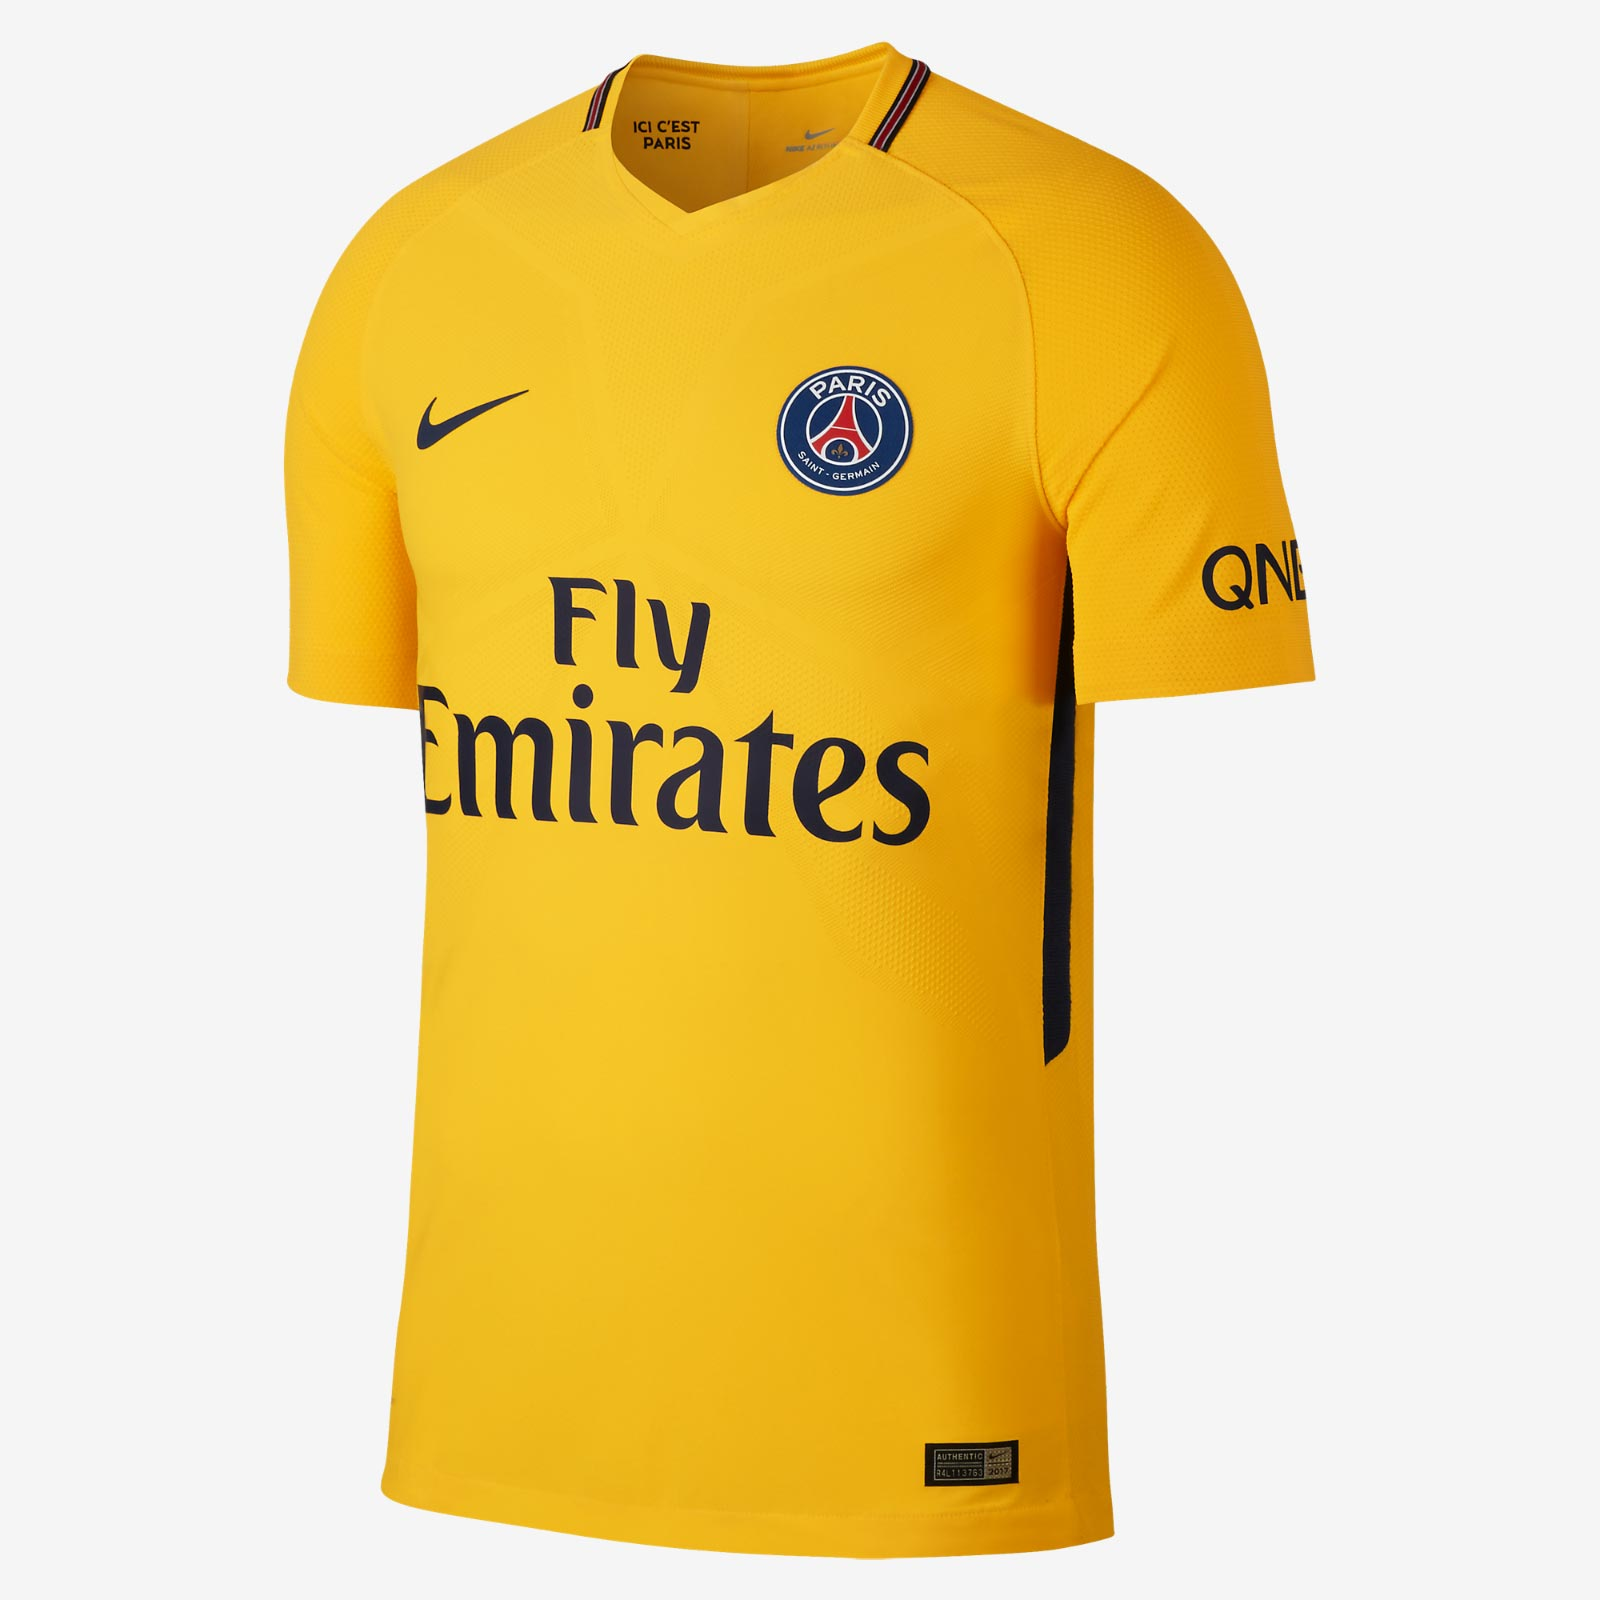 paris saint germain 17 18 away kit revealed footy headlines. Black Bedroom Furniture Sets. Home Design Ideas